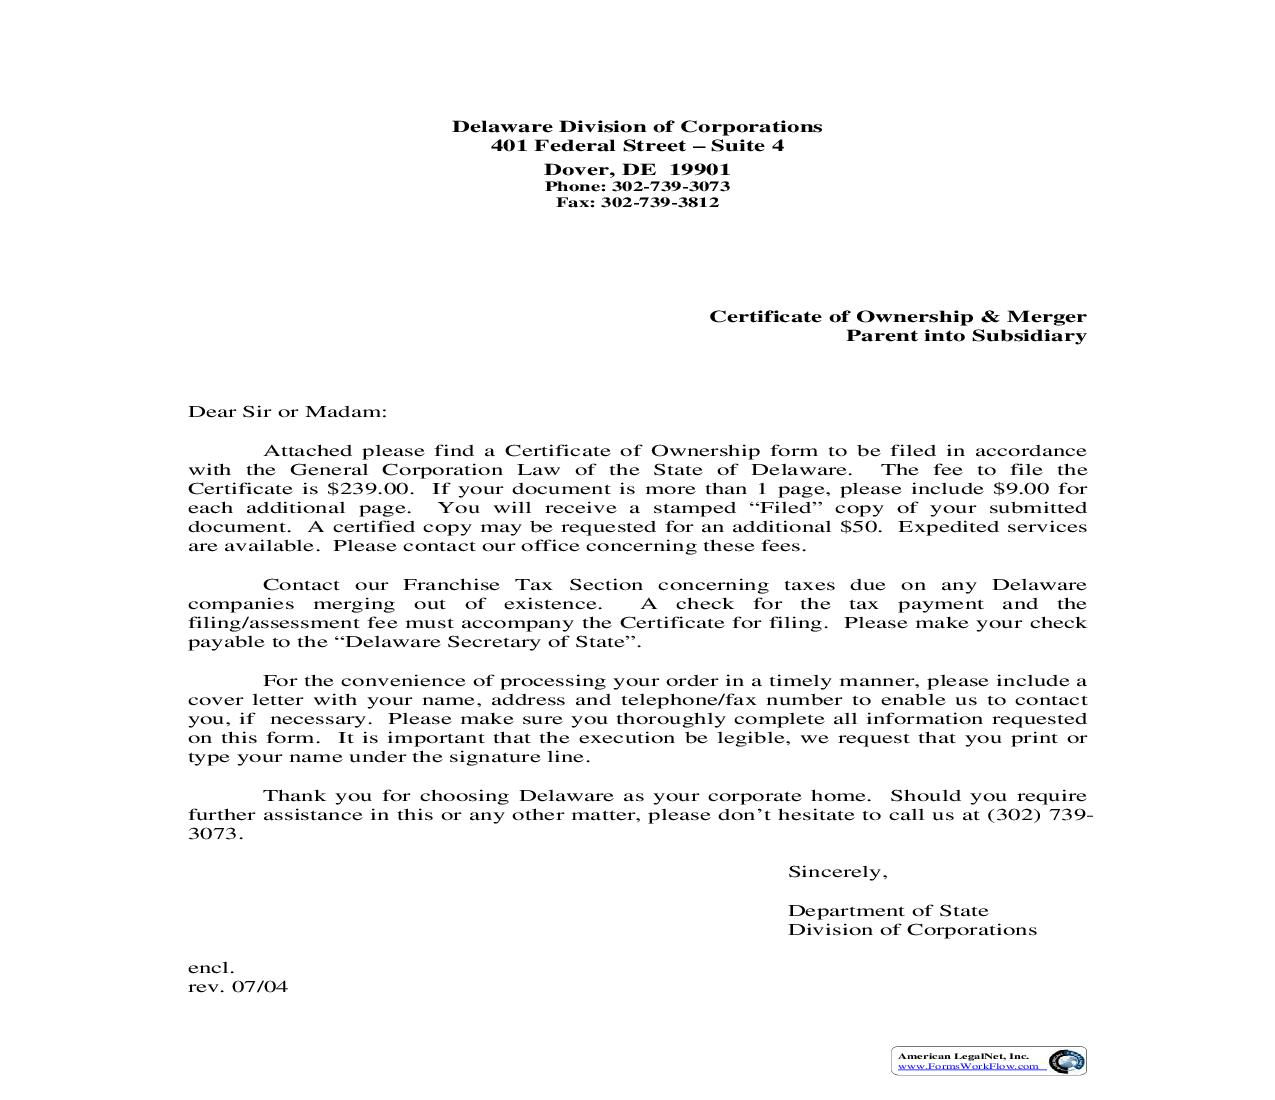 Certificate Of Ownership And Merger - Parent Into Subsidiary   Pdf Fpdf Doc Docx   Delaware